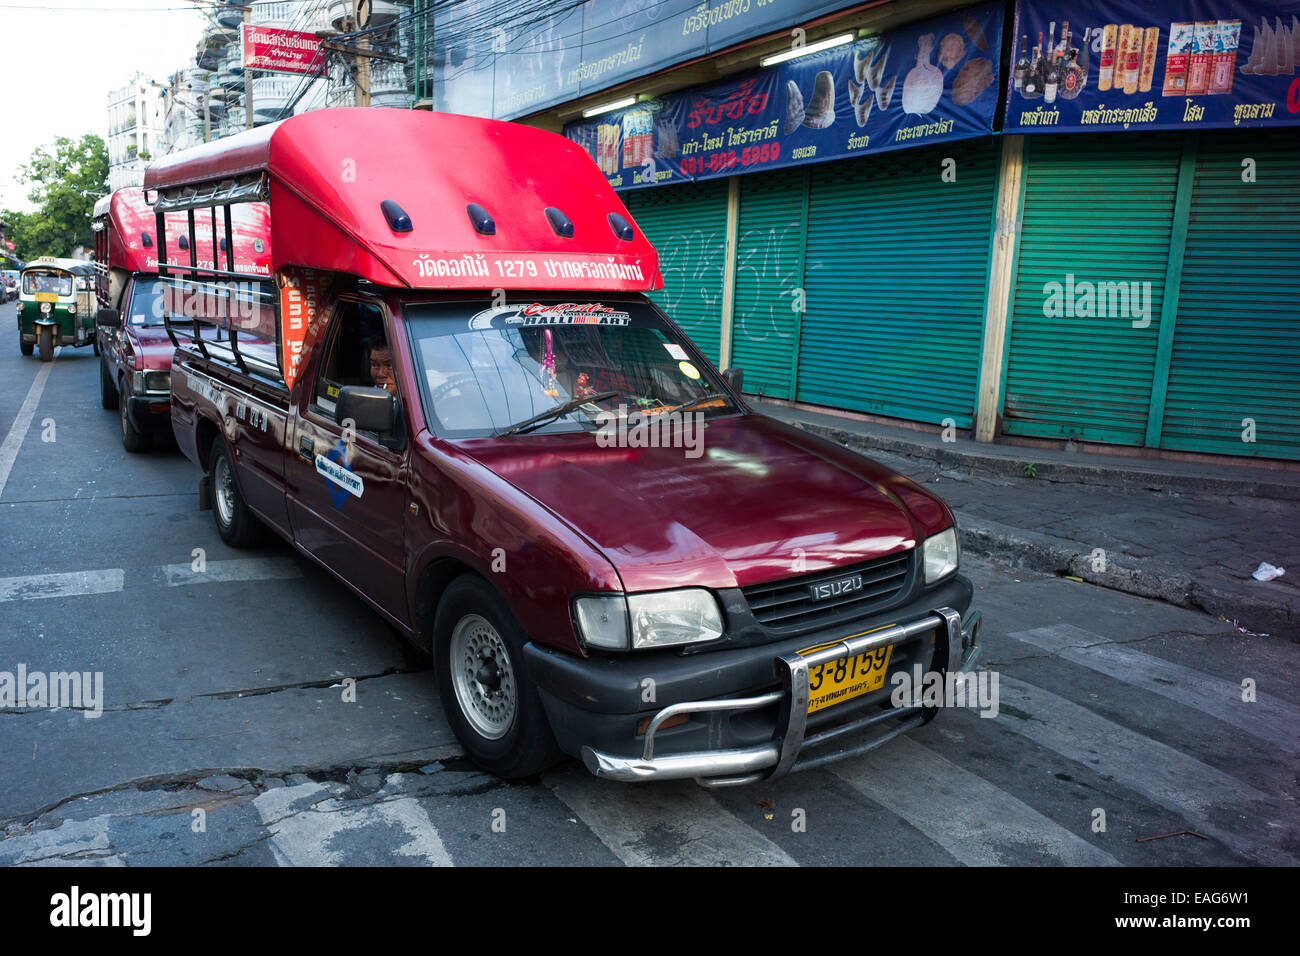 Songthaew public transportation truck, Charoenkrung road, Bangkok, Thailand. - Stock Image